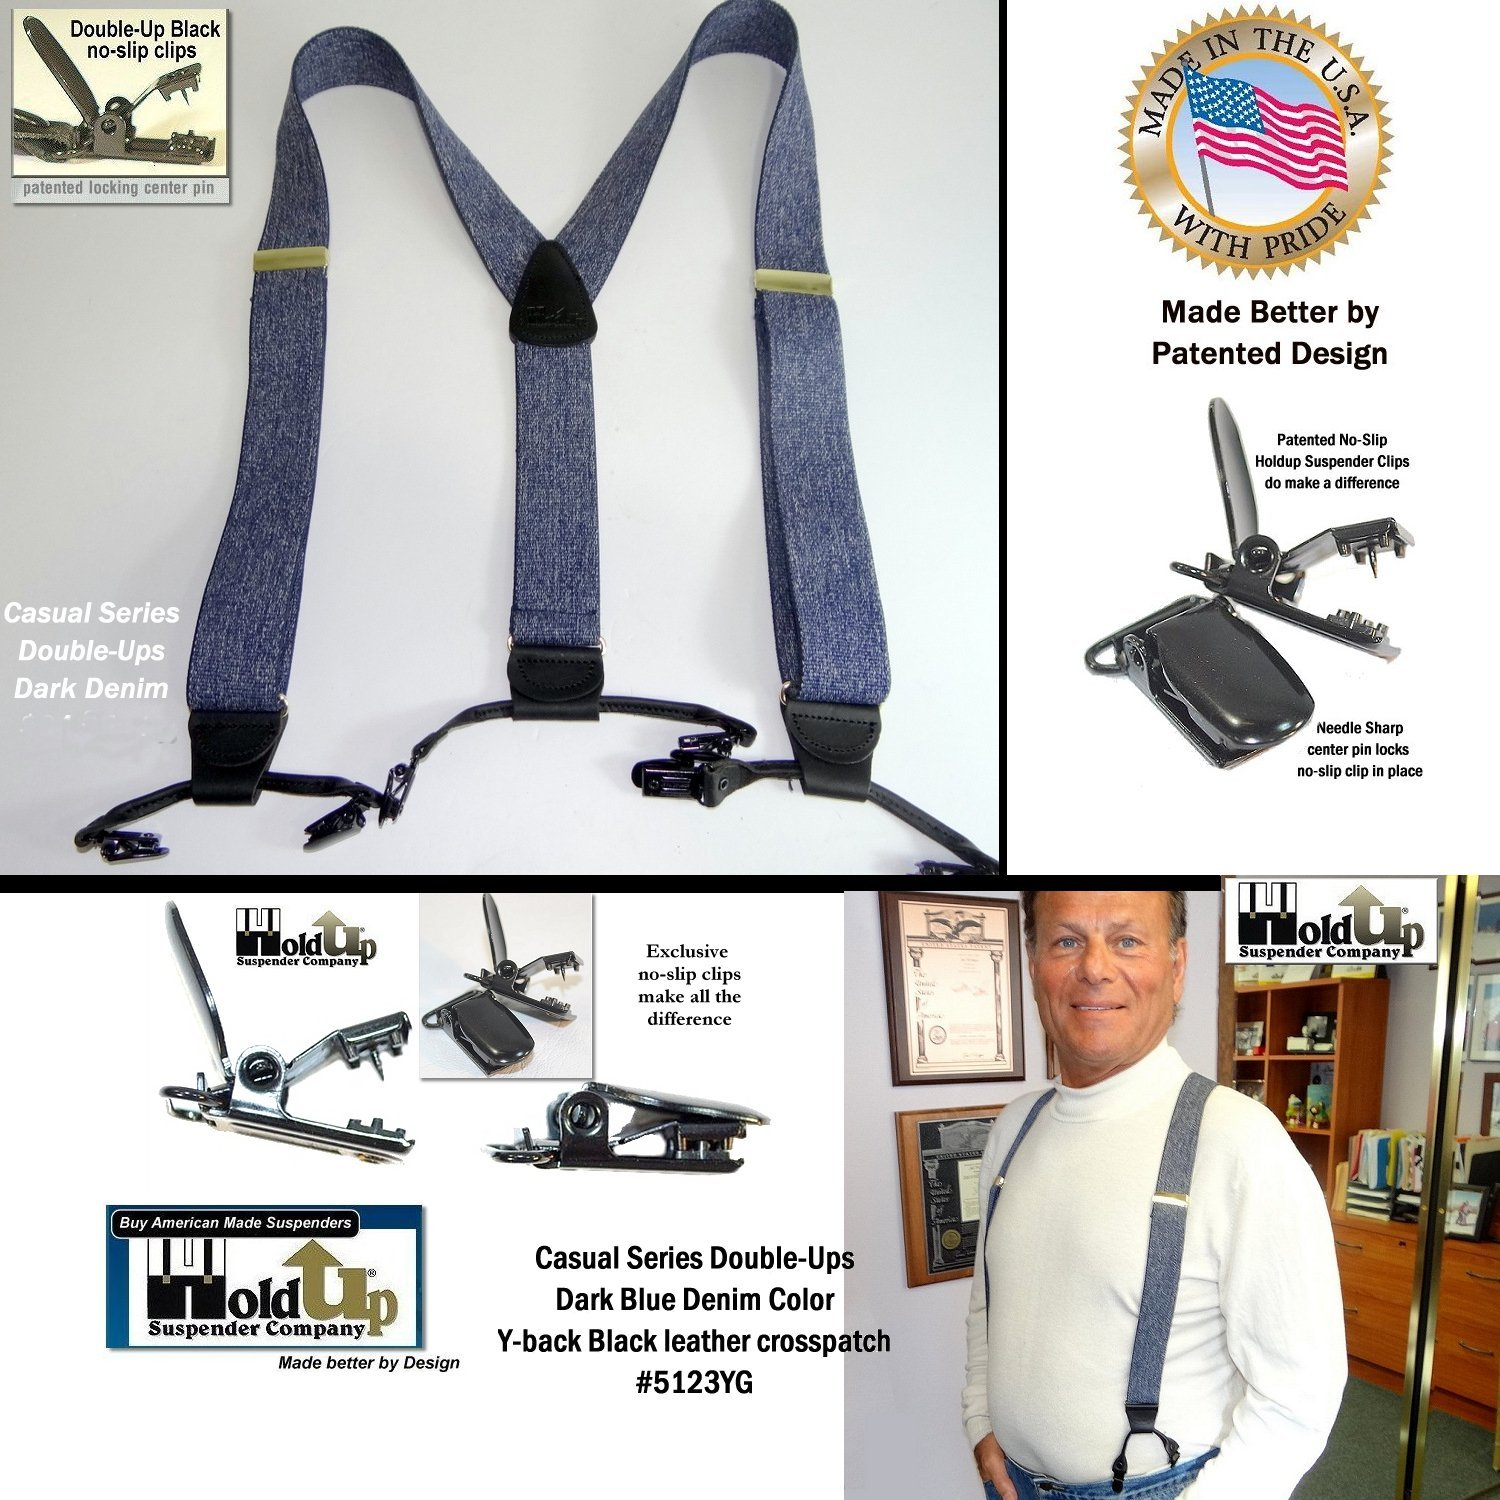 Dark Blue Denim Dual Clip Double-Up Style Holdup Suspenders in Y-back style are made in the USA by Holdup Suspender Company Holdup Suspender Company Inc 5123YG